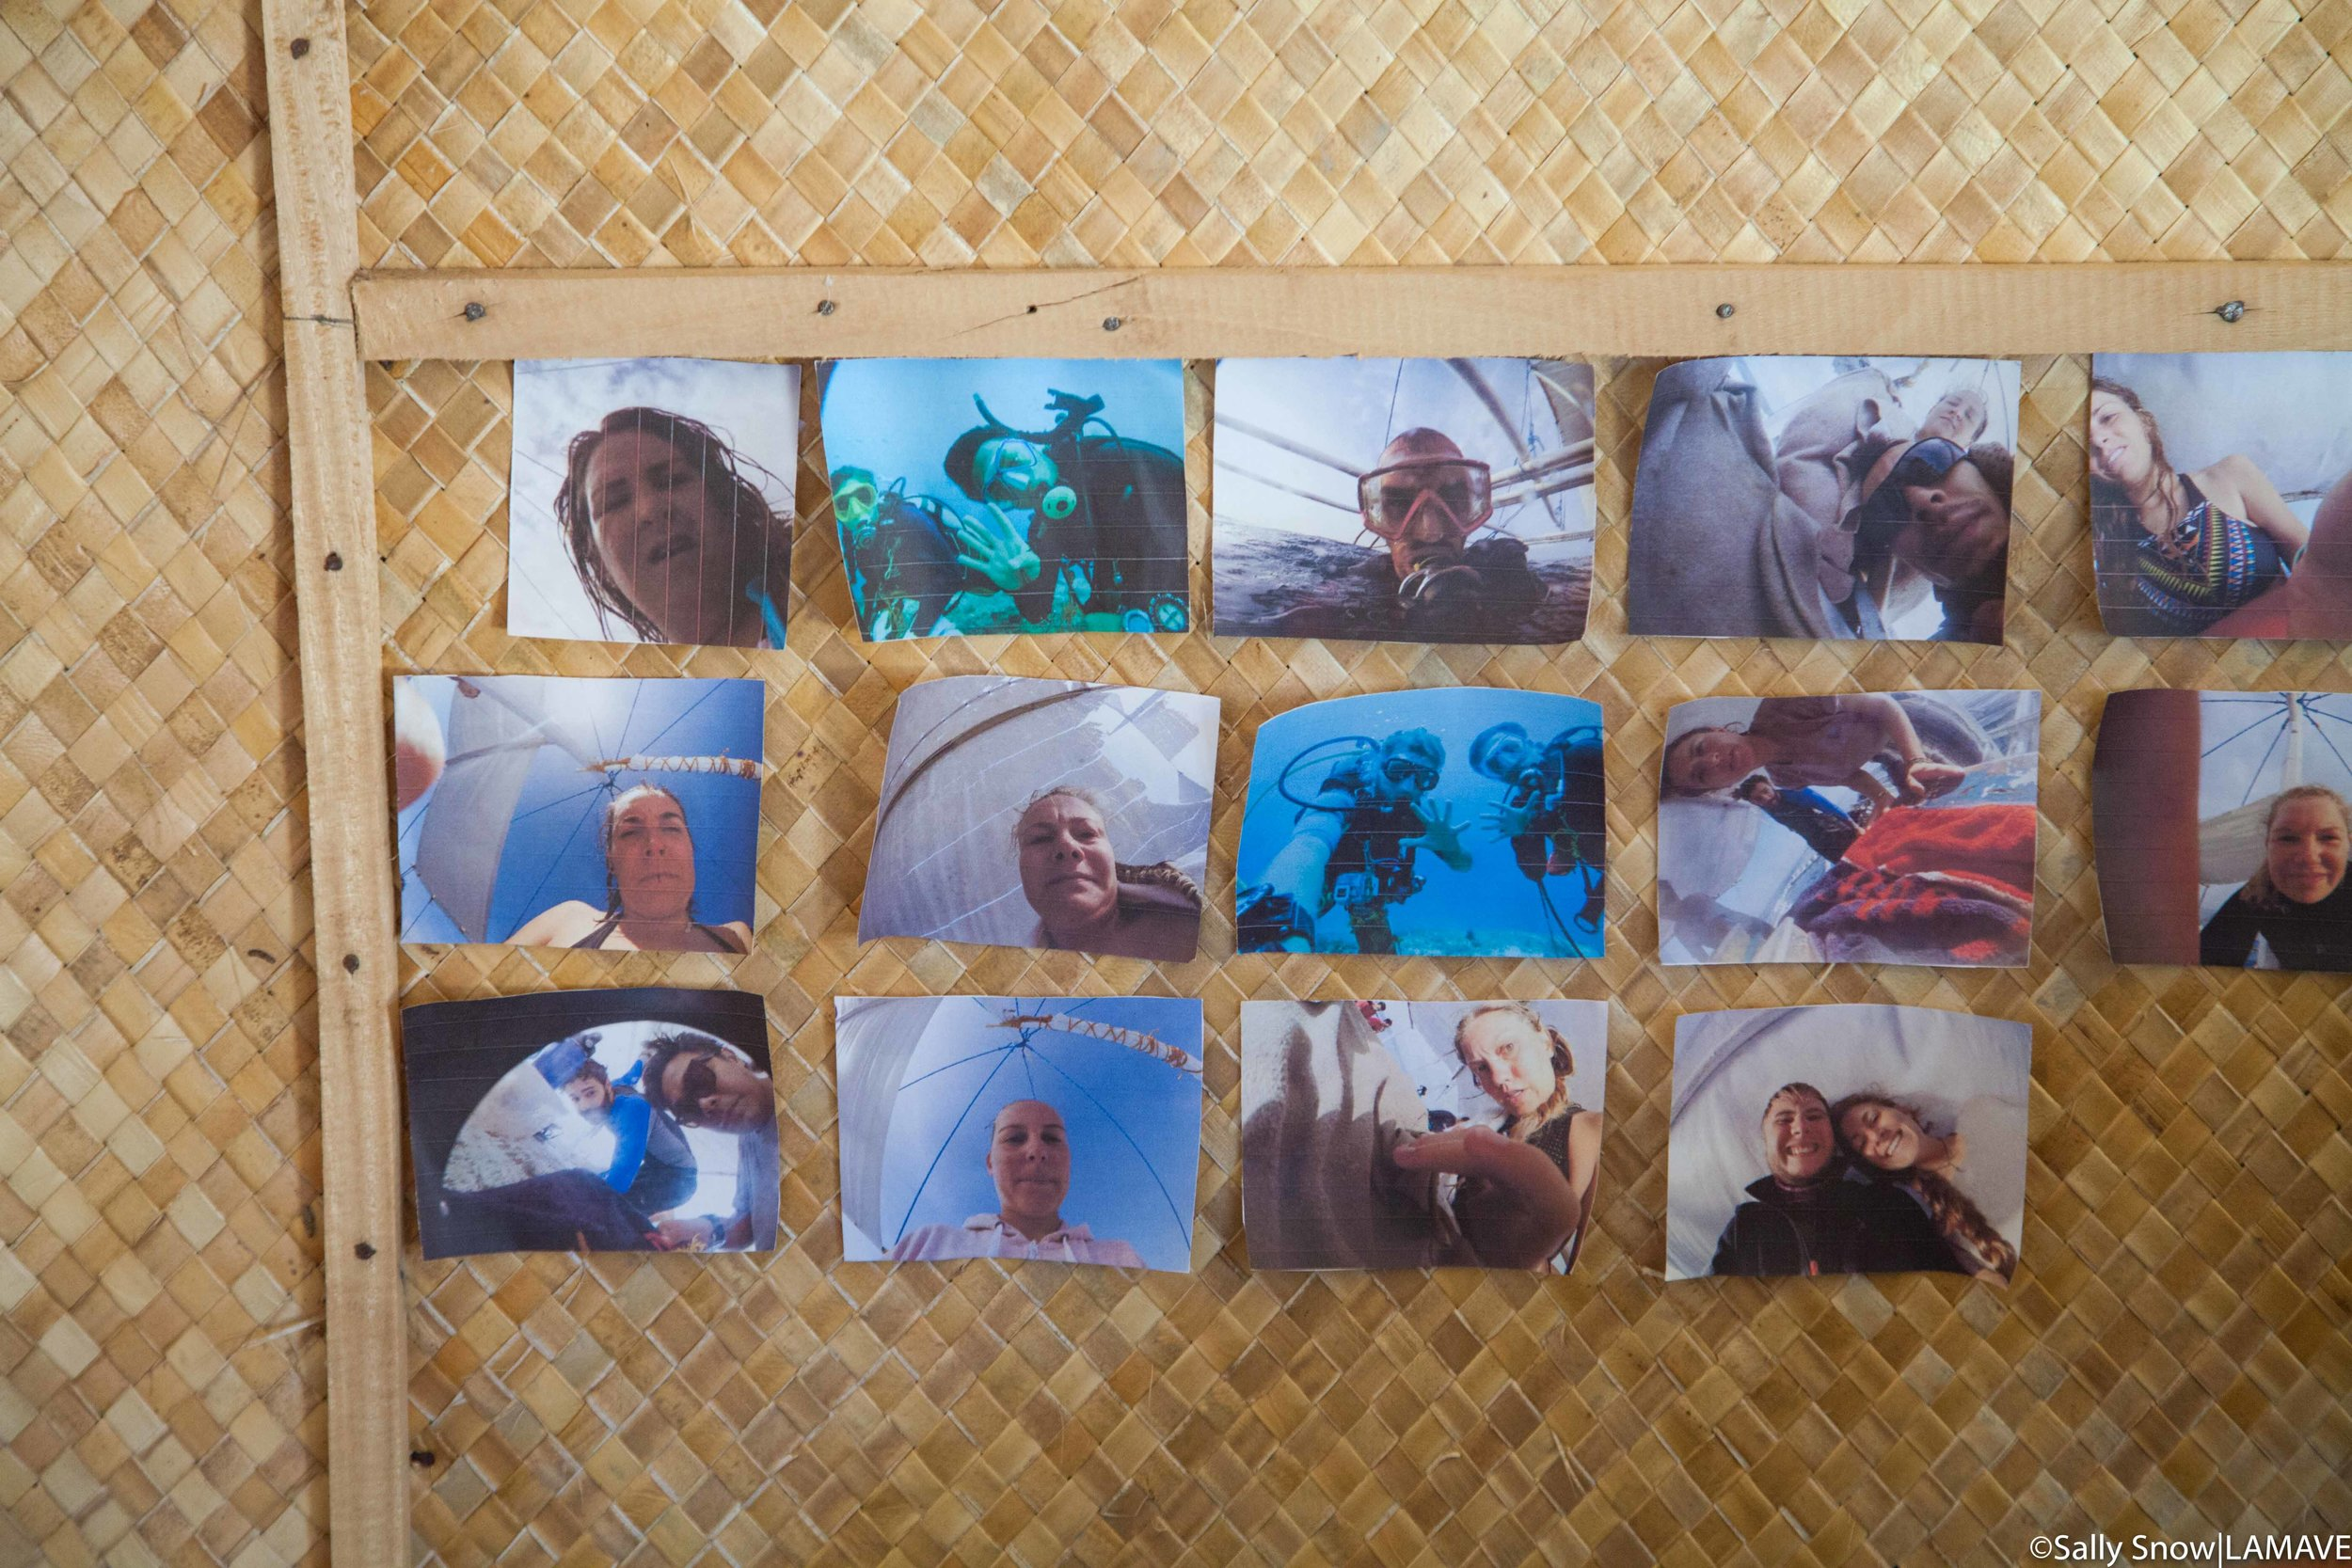 Caught on camera! Previous team members who have contributed to the project are immortalised on the office wall of fame - screenshots from the Remote Underwater Video System.